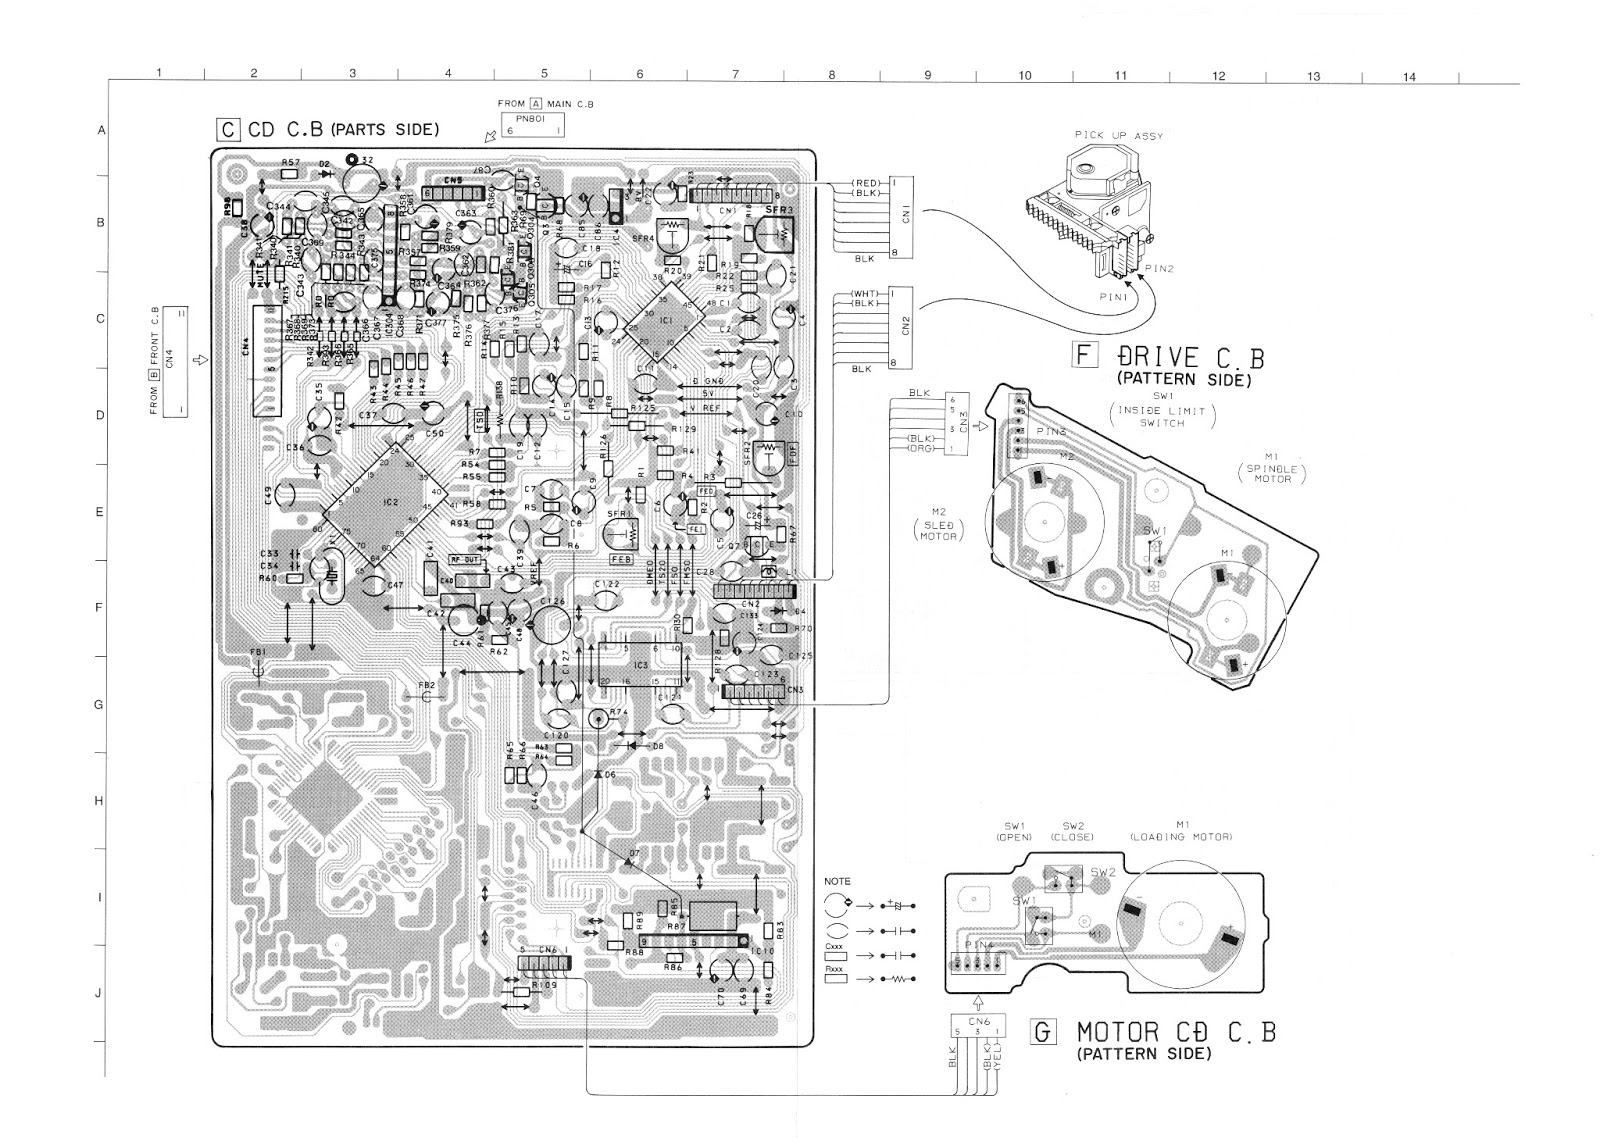 2002 chevy 1500 radio wiring diagram opel vectra c 1997 ford f150 cd player imageresizertool com